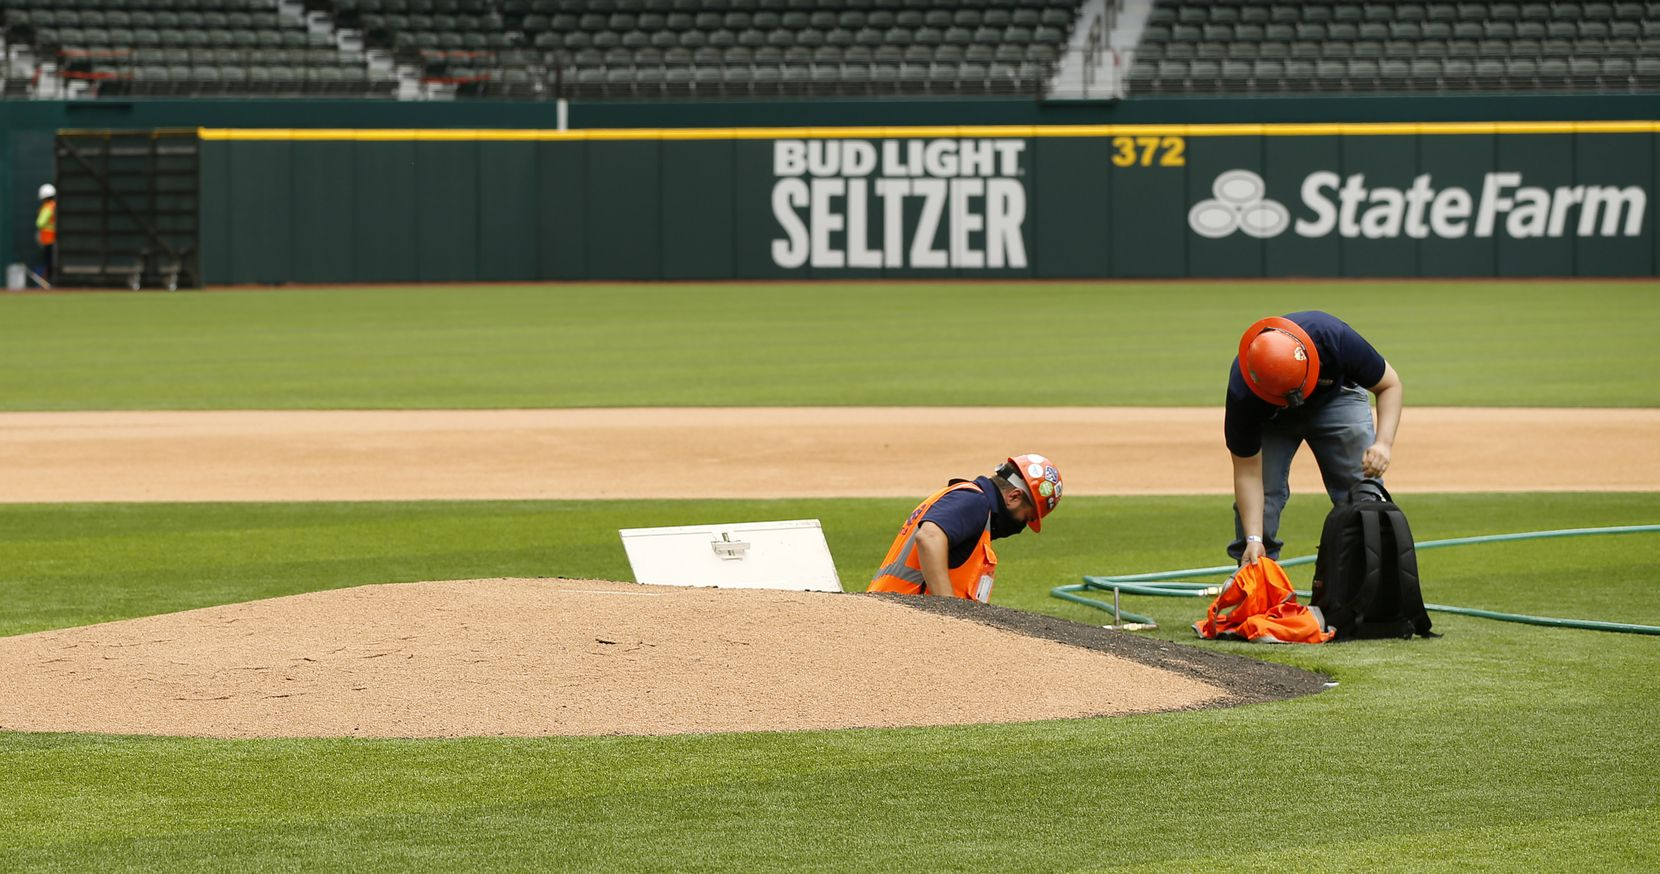 Construction workers climb out of the pitching mound at the newly completed Globe Life Field in Arlington, Wednesday, May 20 2020. A door at the back of the mound leads to a 3-4 foot crawl space for the circular dirt hill to be lowered for non-baseball events. (Tom Fox/The Dallas Morning News)